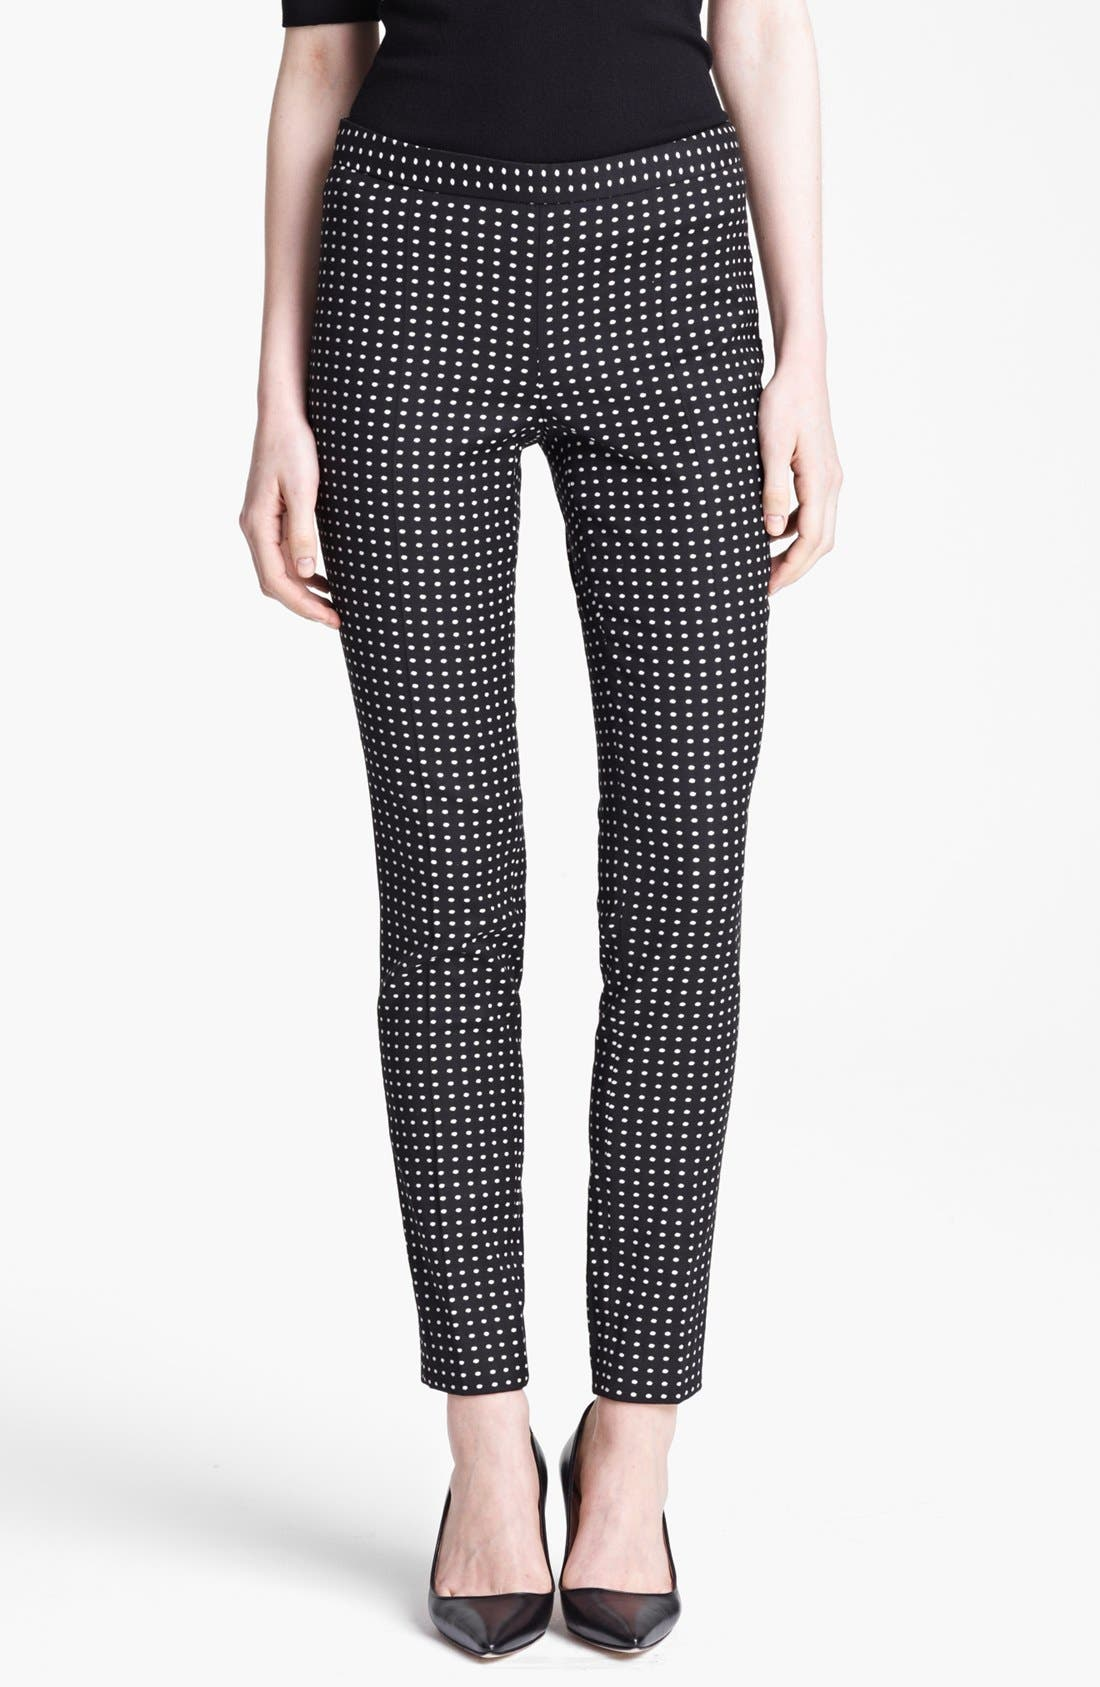 Alternate Image 1 Selected - Moschino Cheap & Chic Polka Dot Leggings